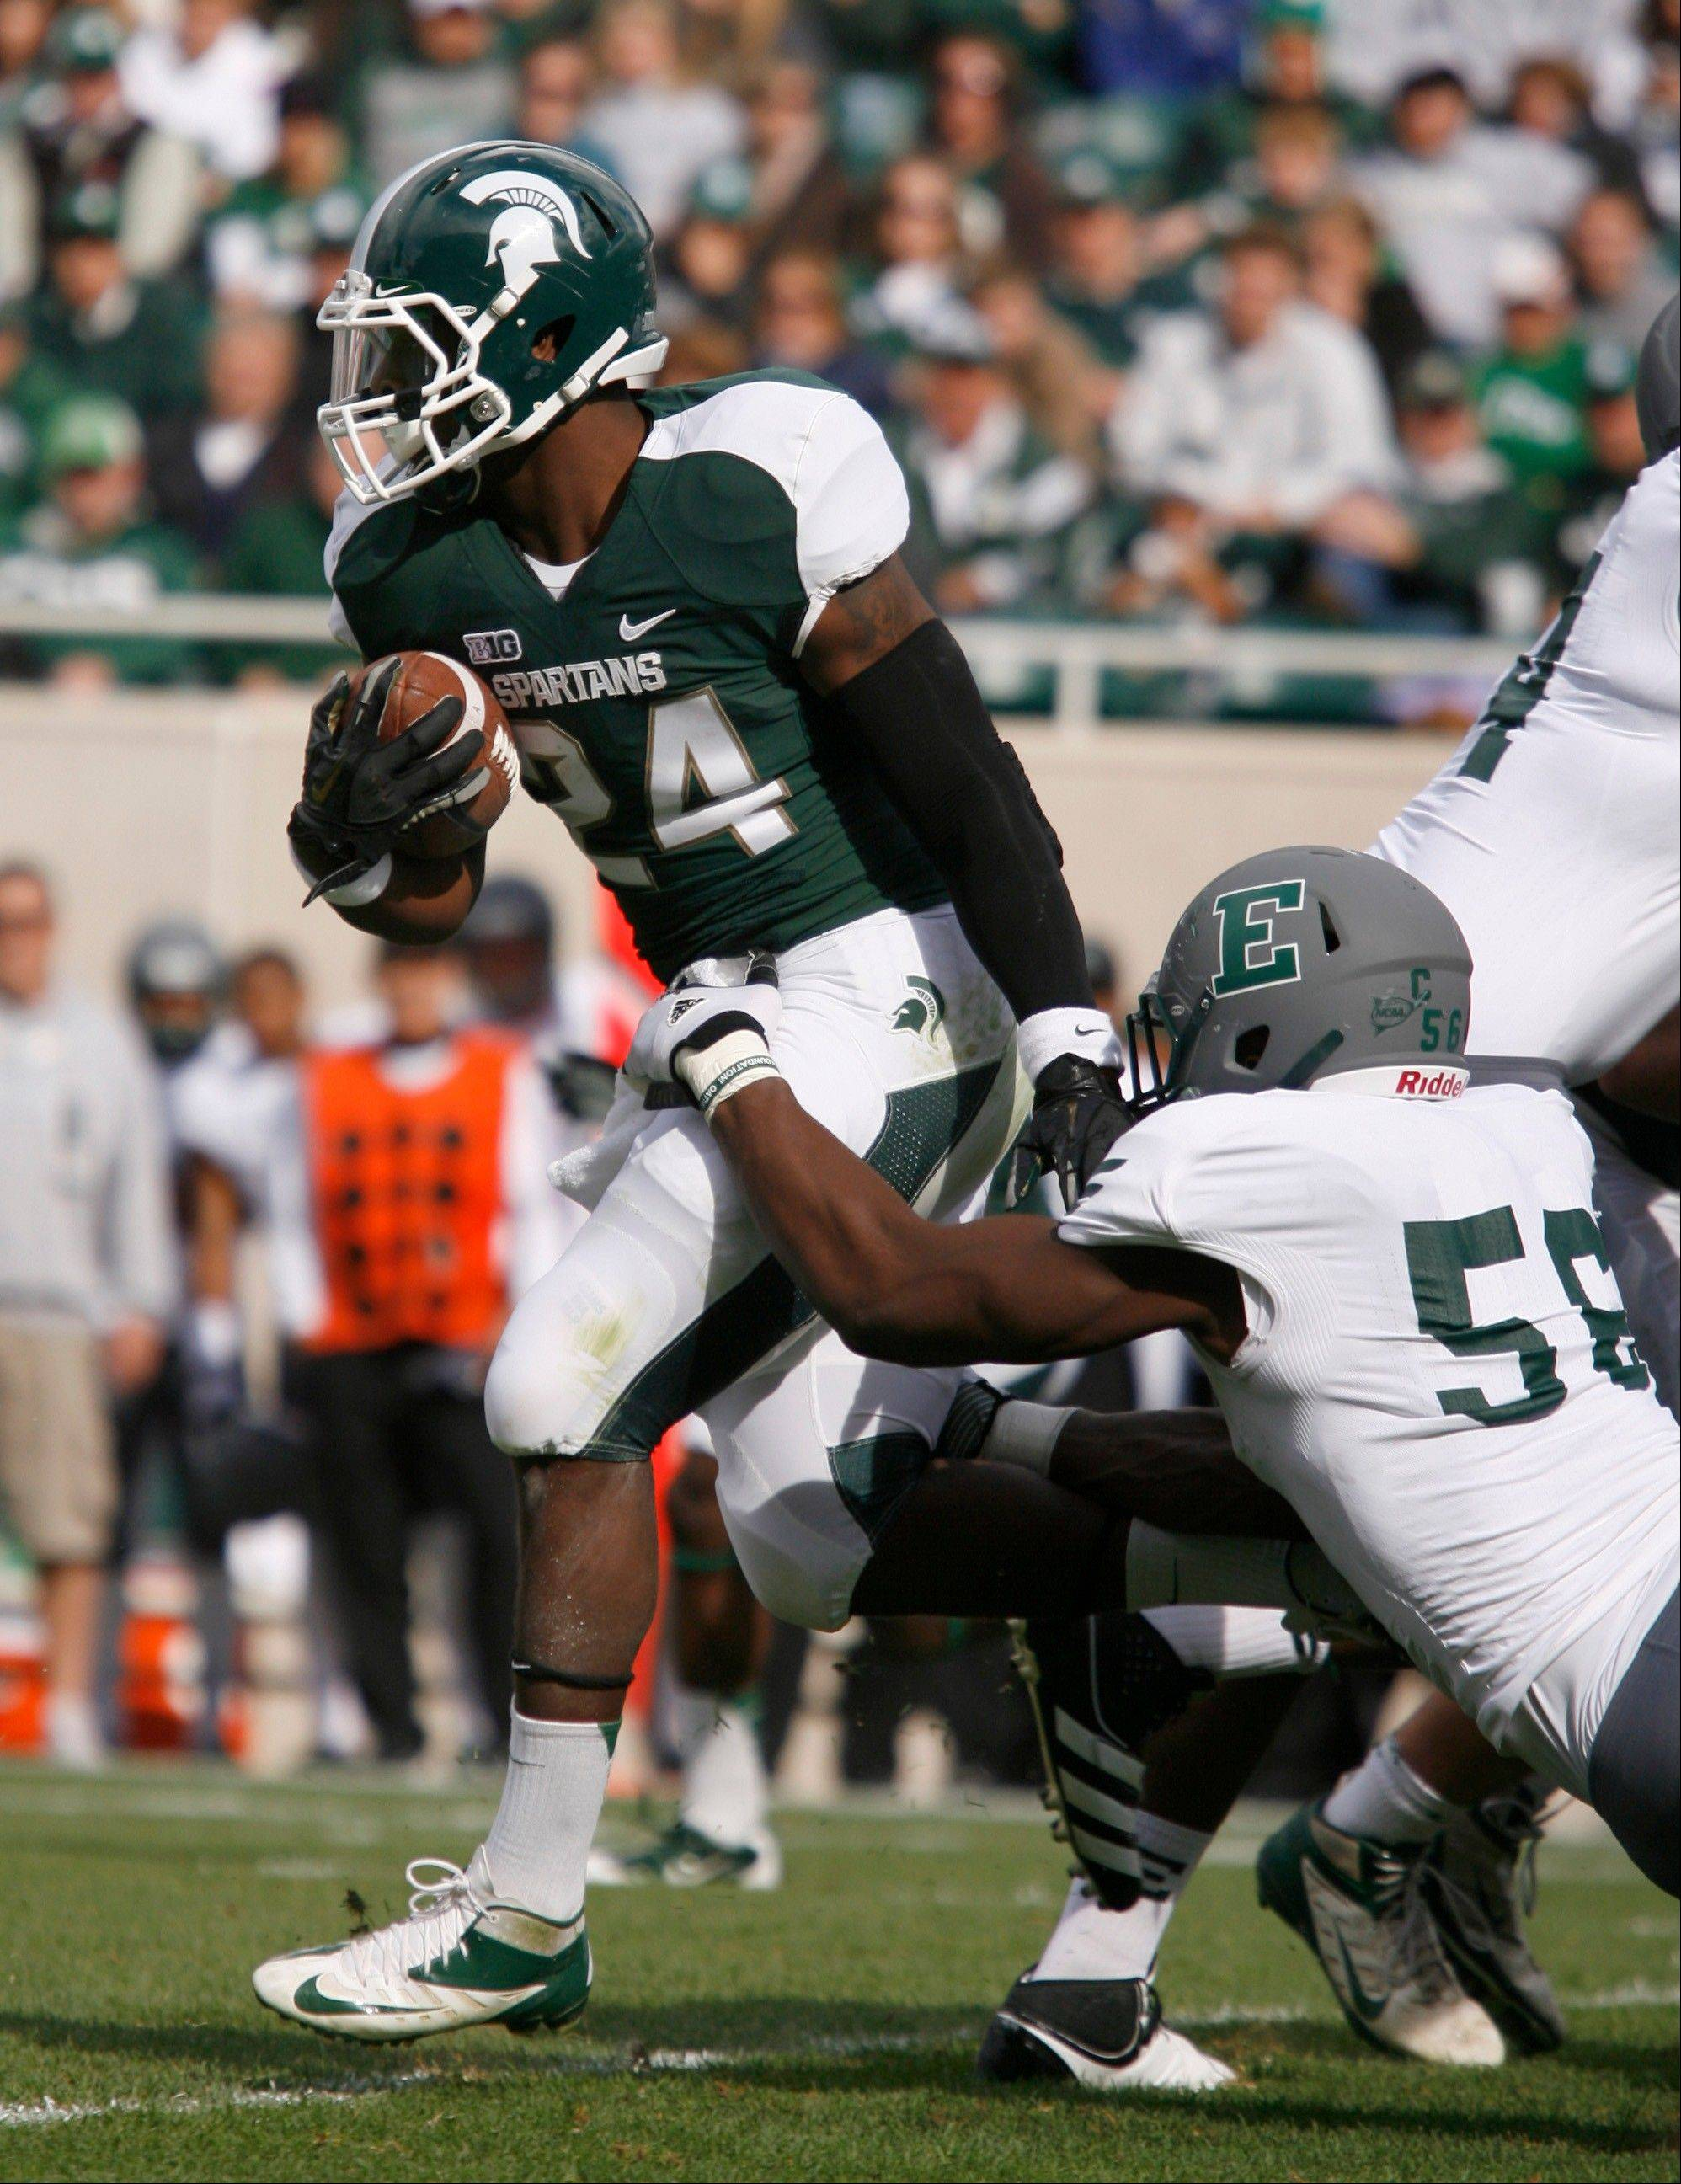 Michigan State's Le'Veon Bell, left, escapes the grasp of Eastern Michigan's Andy Mulumba last Saturday in East Lansing, Mich.